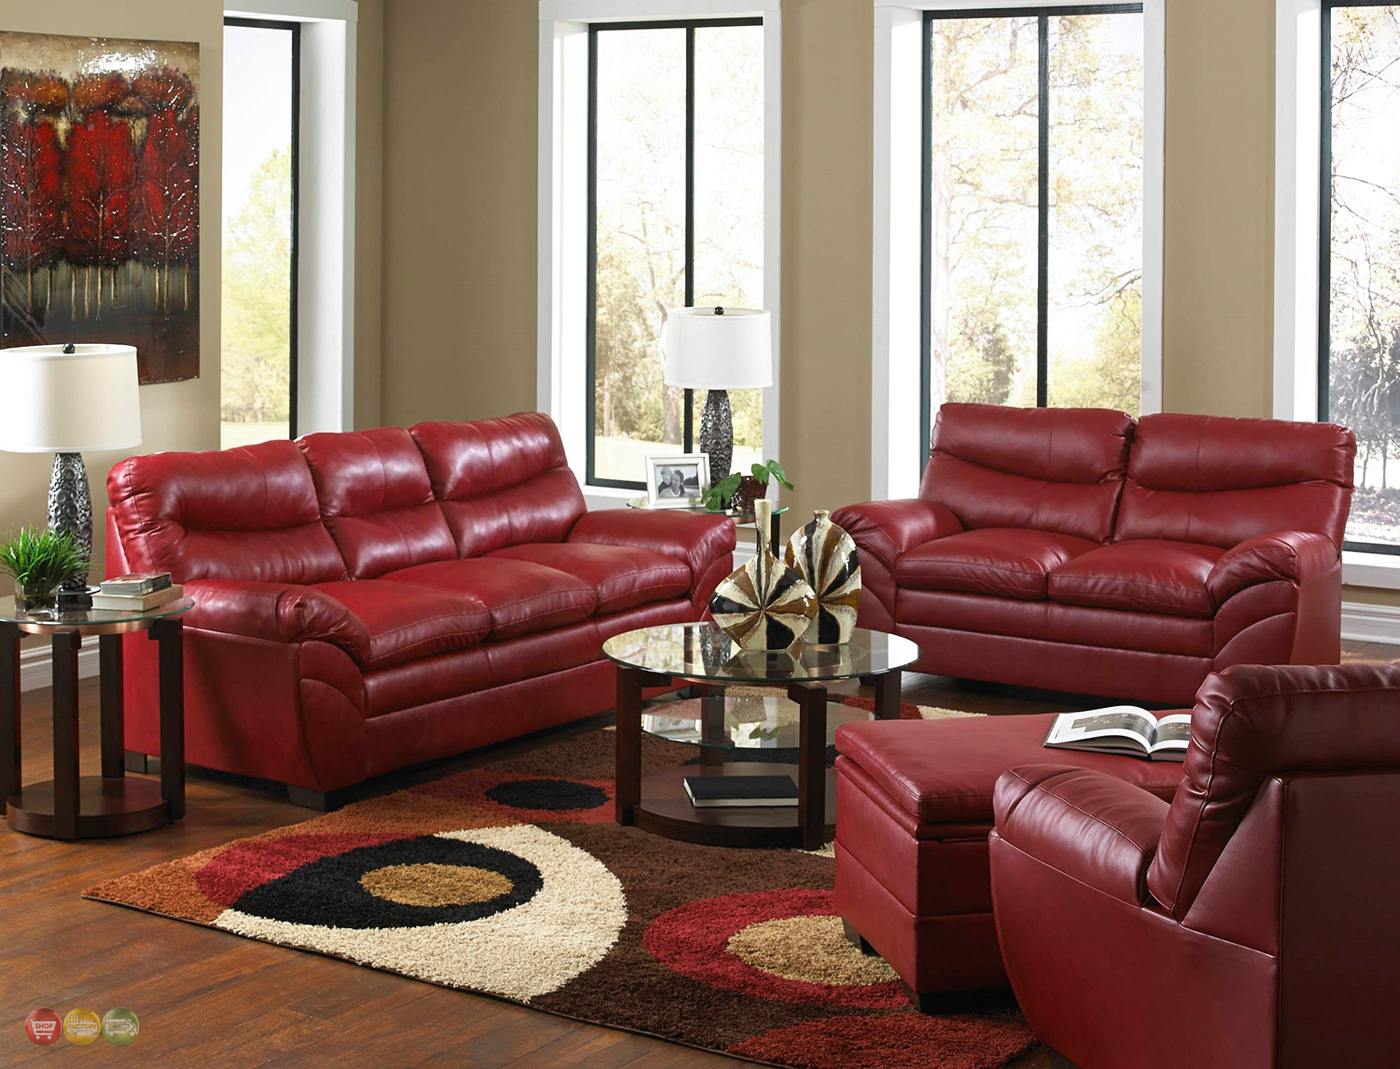 Red living room furniture sets 2017 2018 best cars reviews for Living room chair set